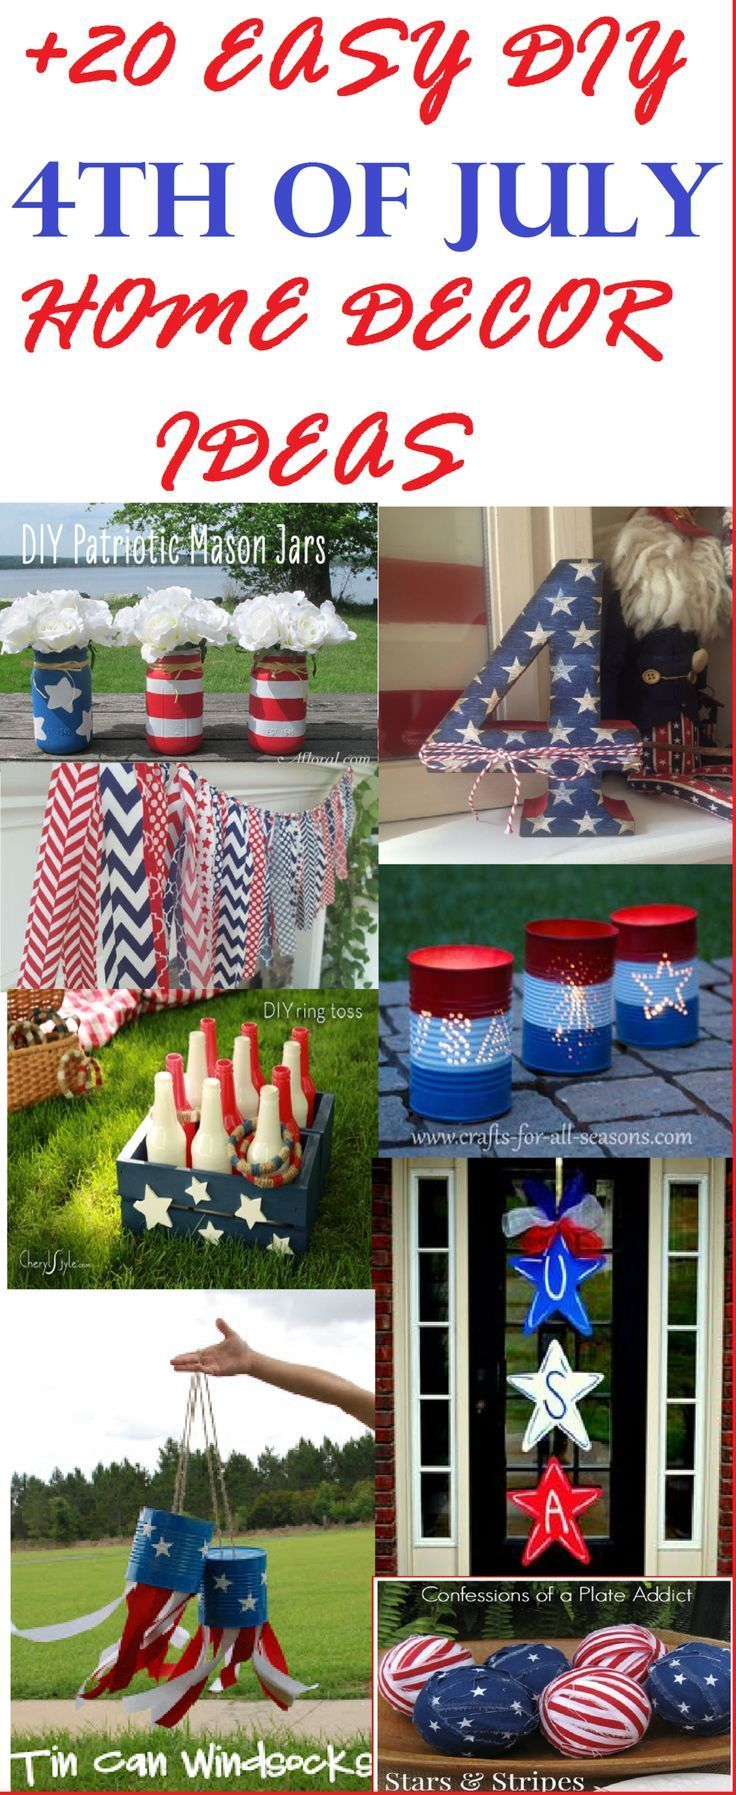 Diy Your Own July 4th Holiday Decor Over 20 Easy Diy 4th Of July Decorations Thrifty Divas Diy 4th Of July Decorations 4th Of July July